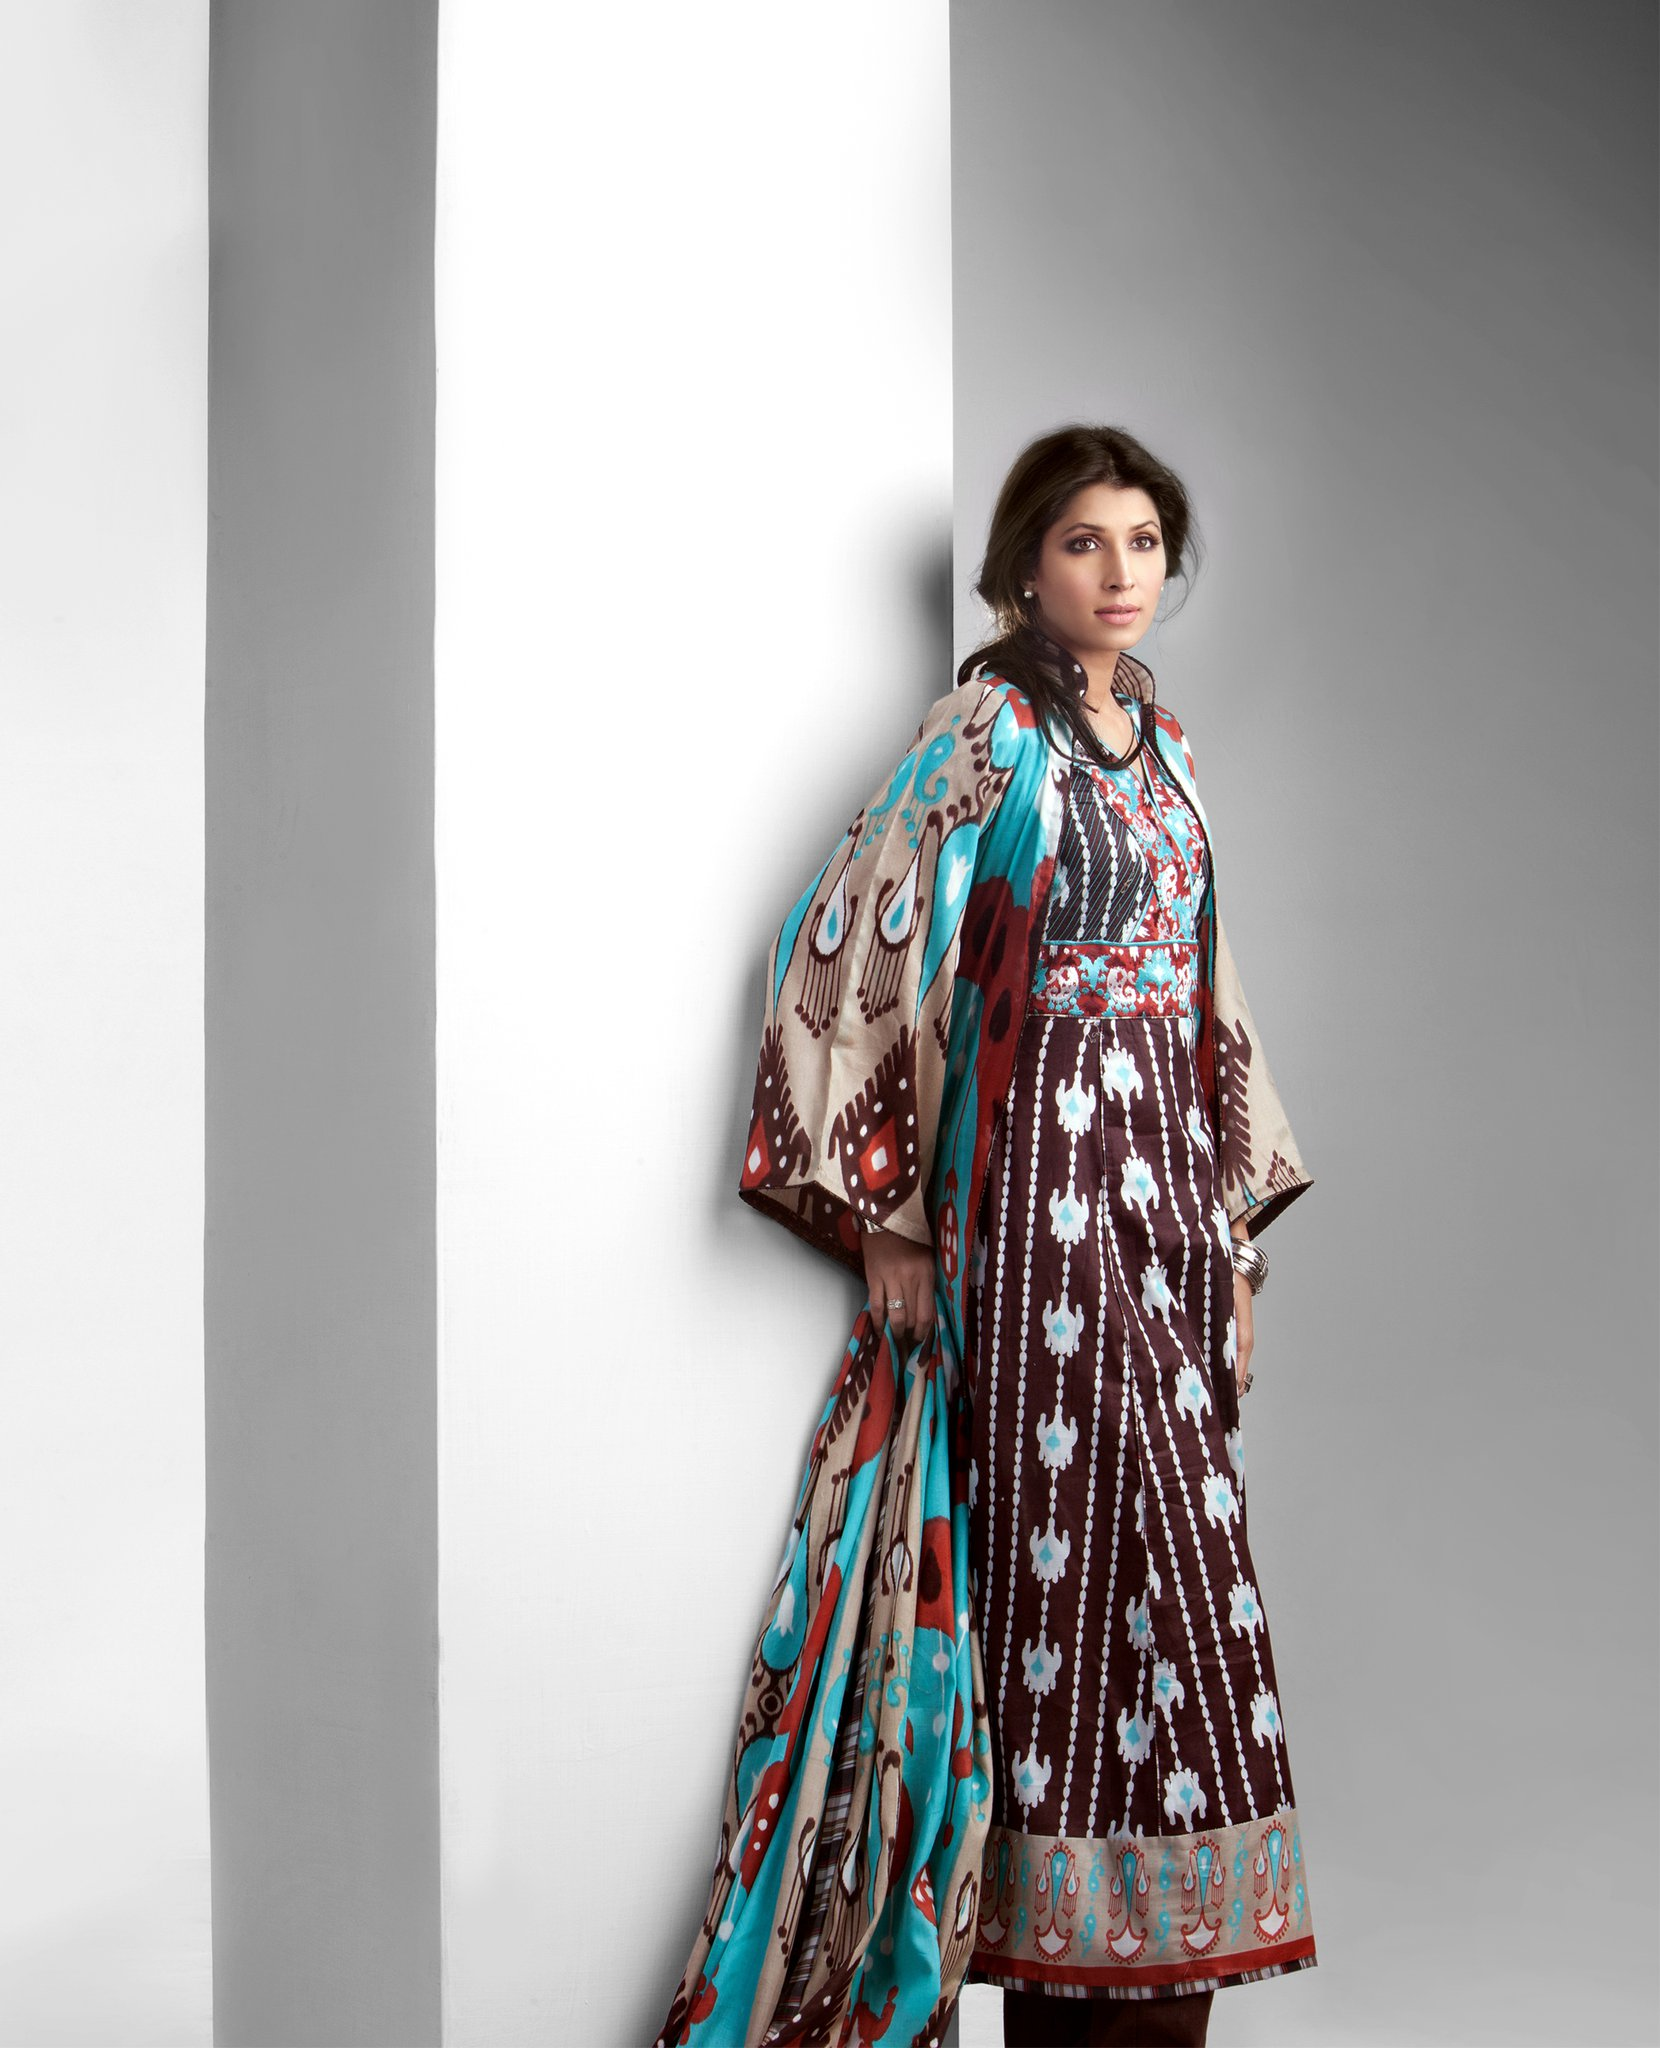 Vaneeza V Lawn Prints For Hot Summer 2011 | YusraBlog.